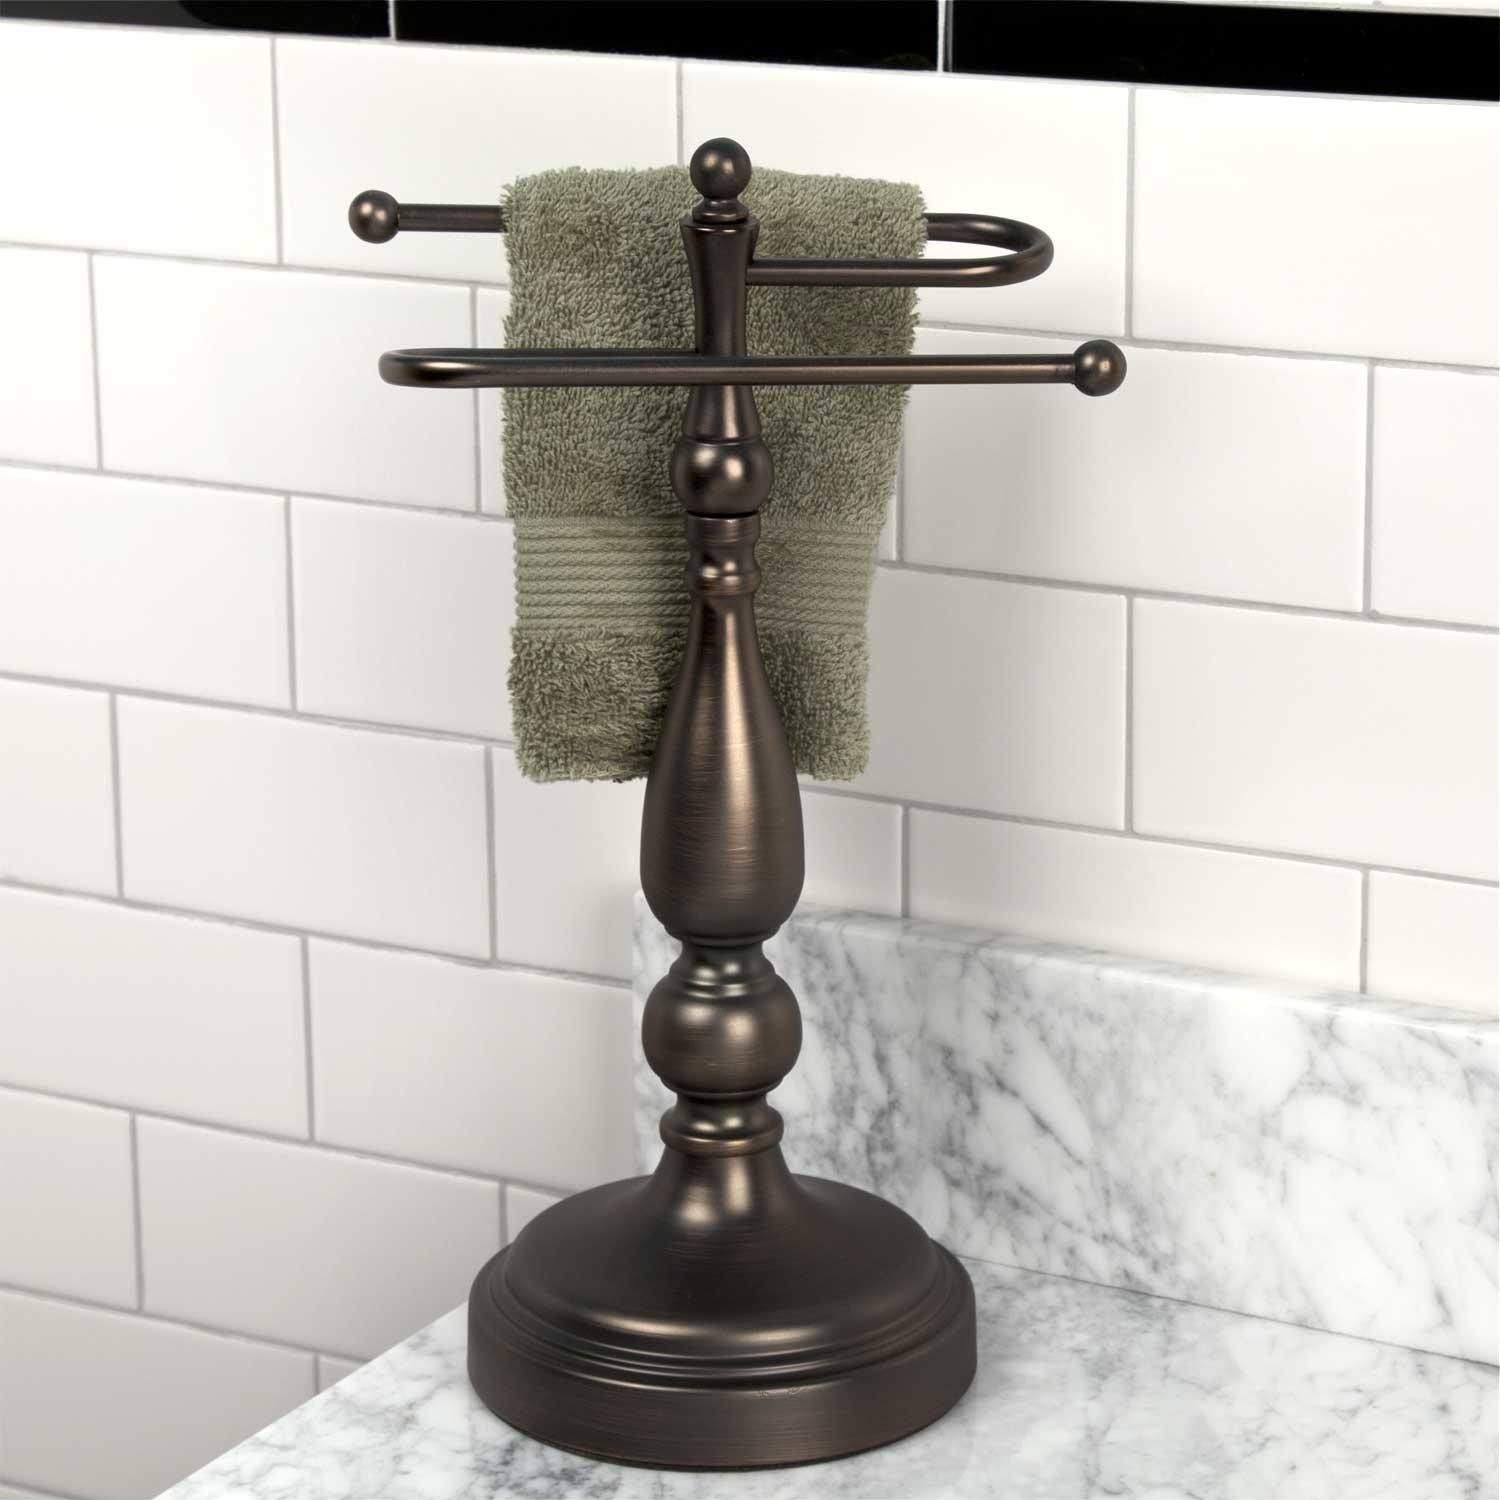 Ridgefield Countertop Towel Bar Bathroom Towel Bar Towel Holder Bathroom Towel Holder